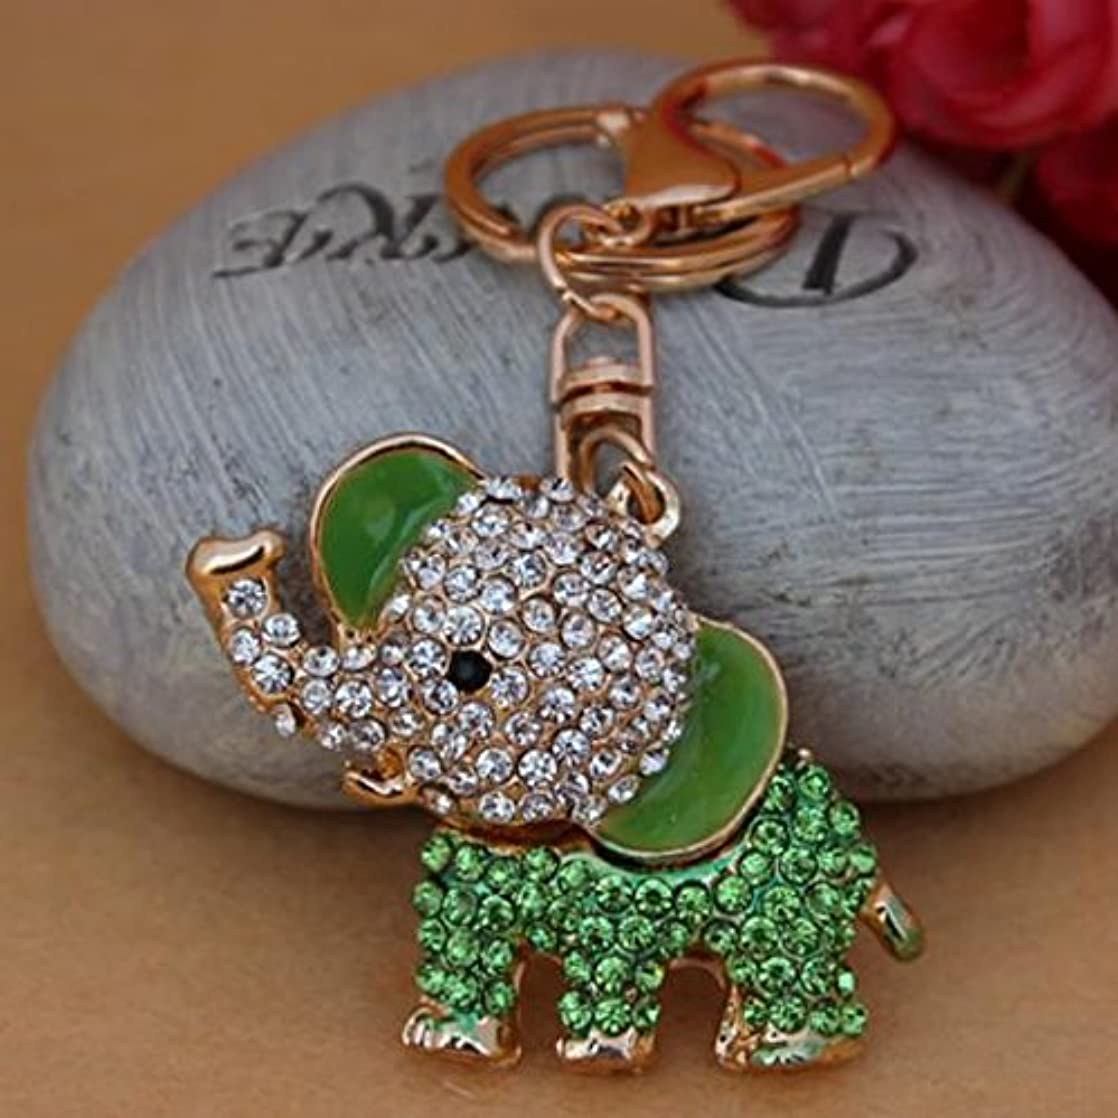 New Lucky Elephant Keychain Bag Charm Rhinestone Anmial Key Ring Cute Gift, Green unveptpu18434